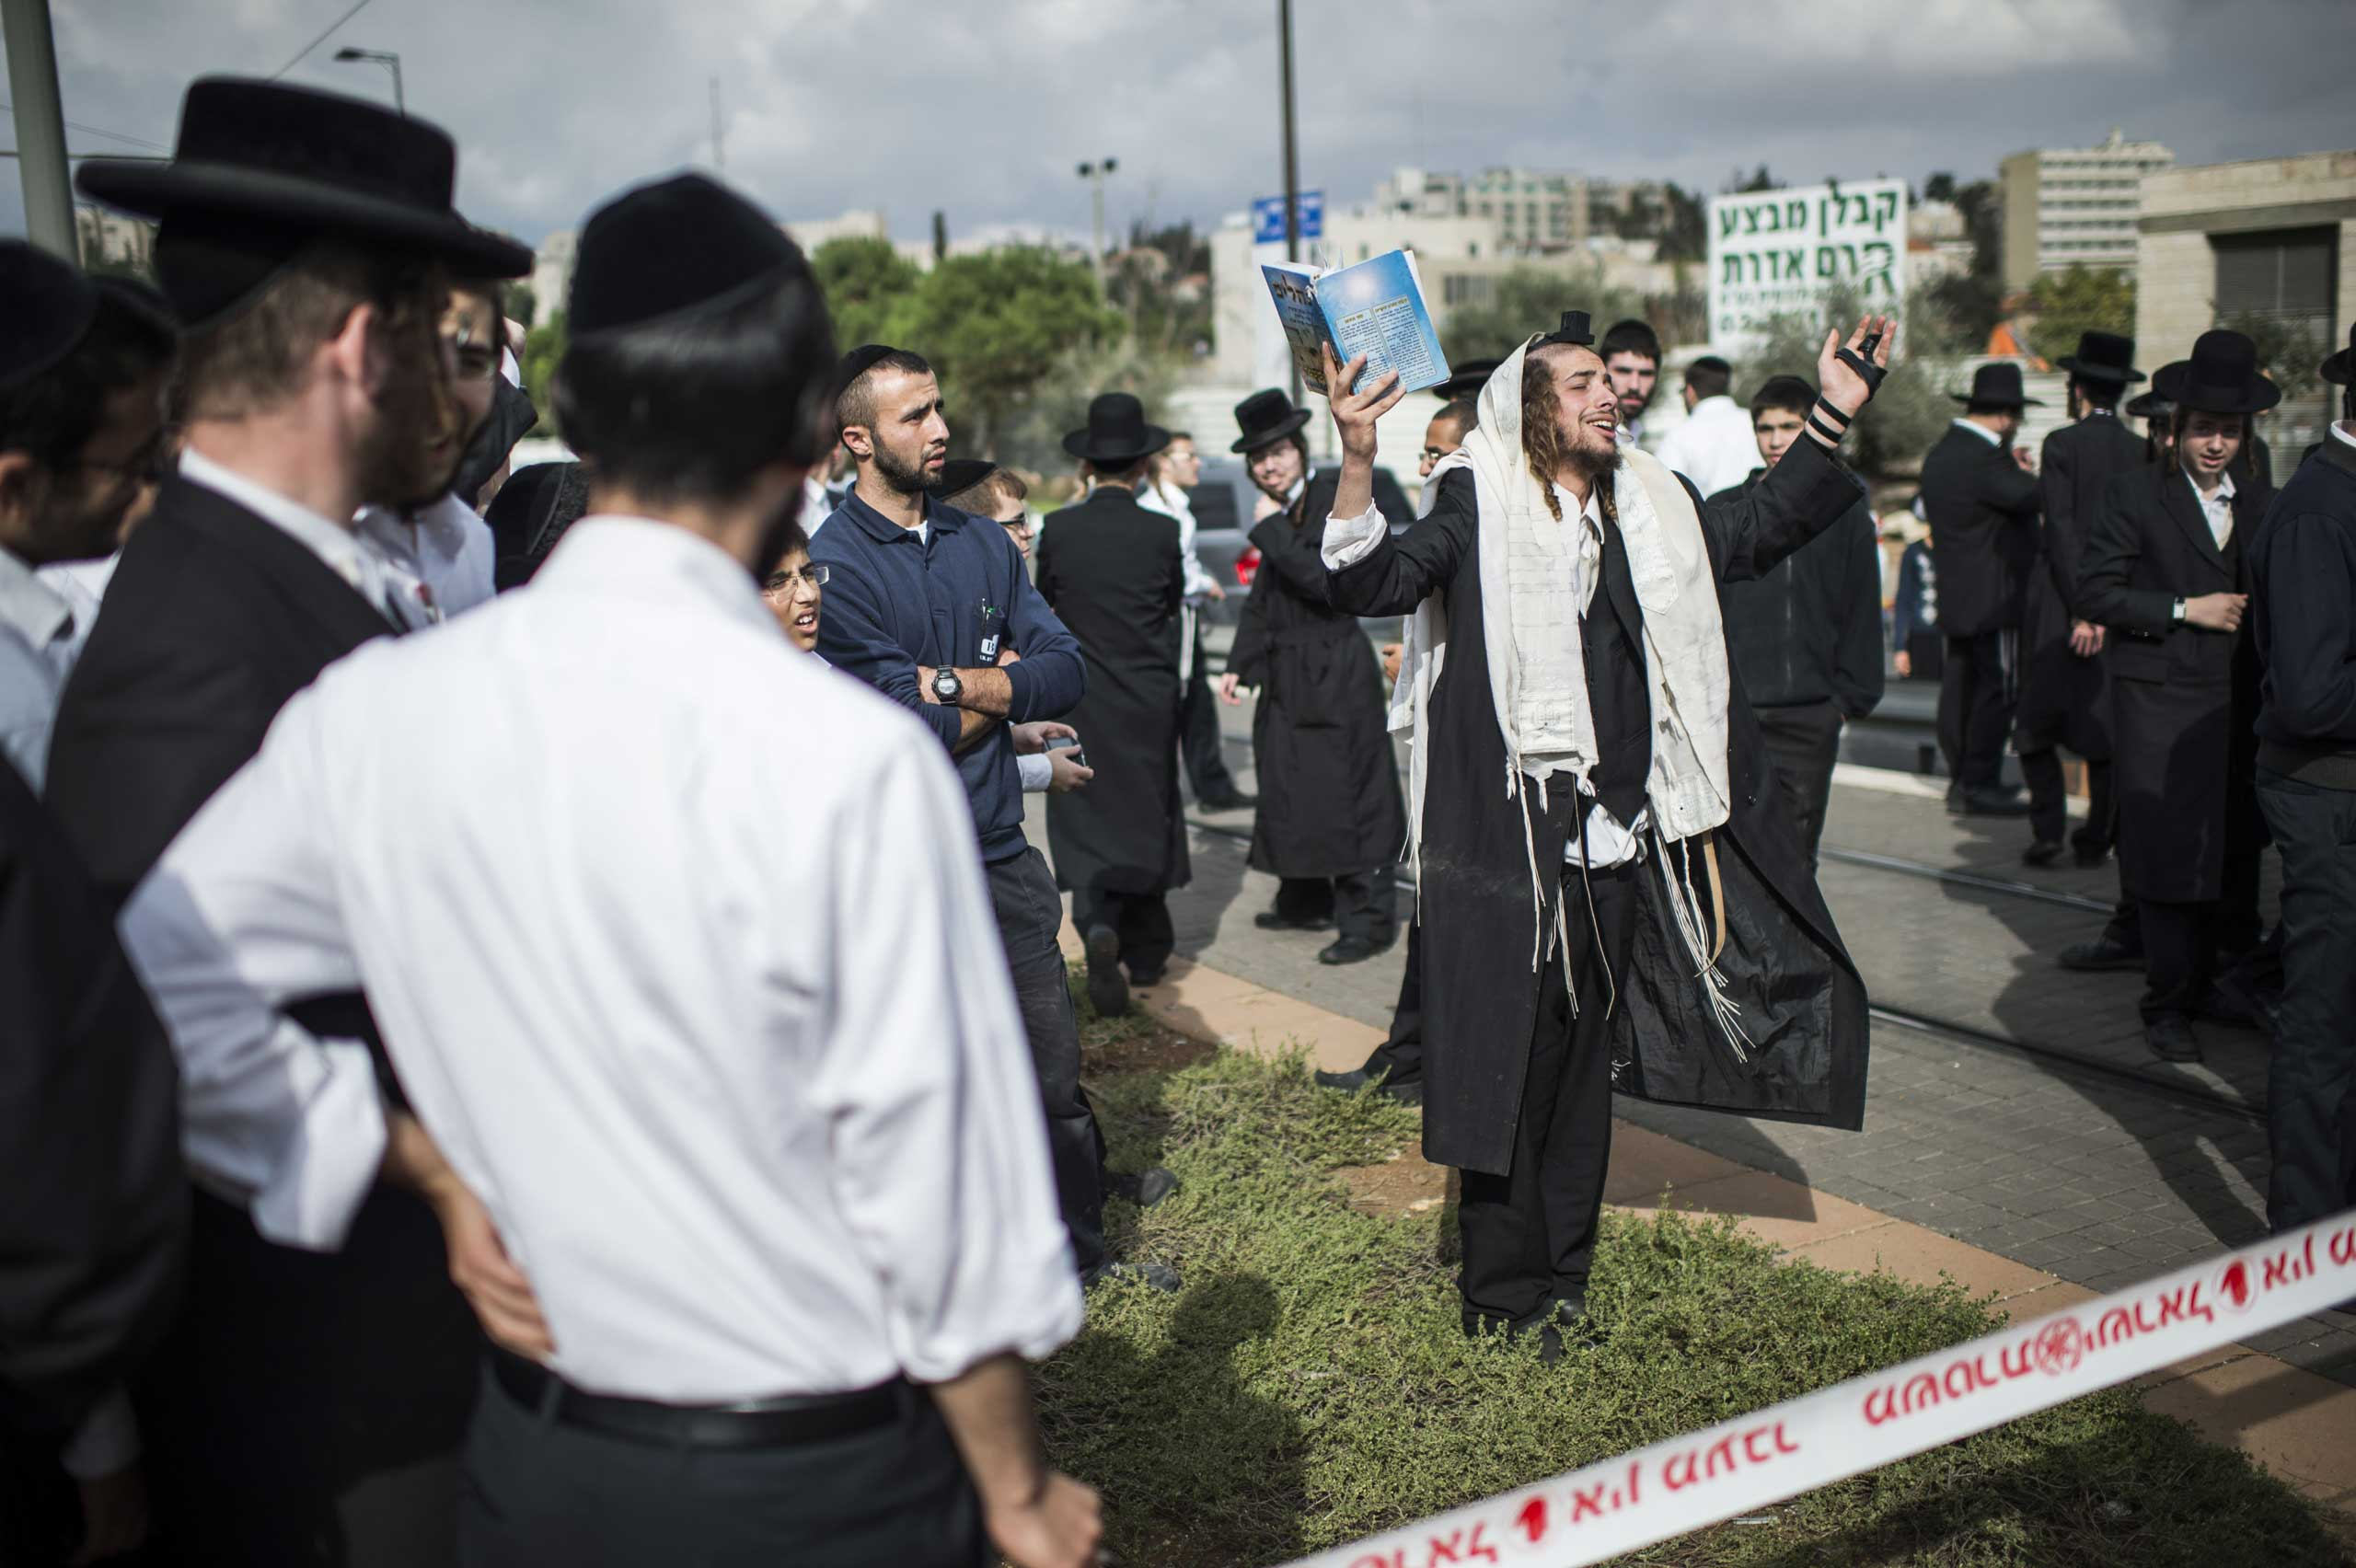 Nov. 5, 2014. Members of the Israeli Orthodox community at the scene of a suspected terrorist attack in Jerusalem. One person was killed and at least 13 people were wounded after a driver crashed into pedestrians in eastern Jerusalem on Wednesday.